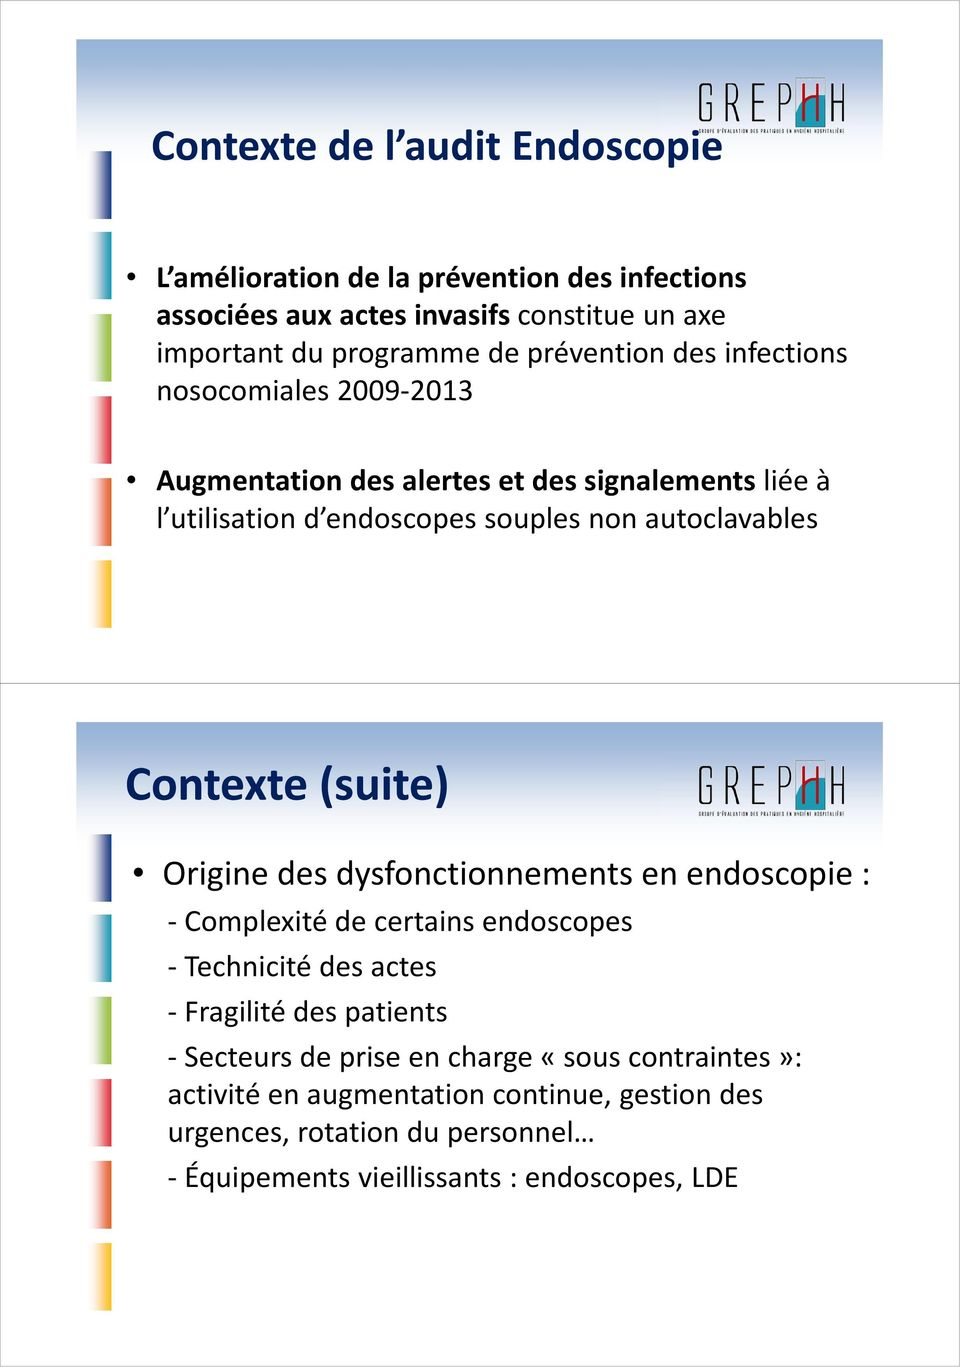 Contexte (suite) Origine des dysfonctionnements en endoscopie : - Complexité de certains endoscopes - Technicité des actes - Fragilité des patients